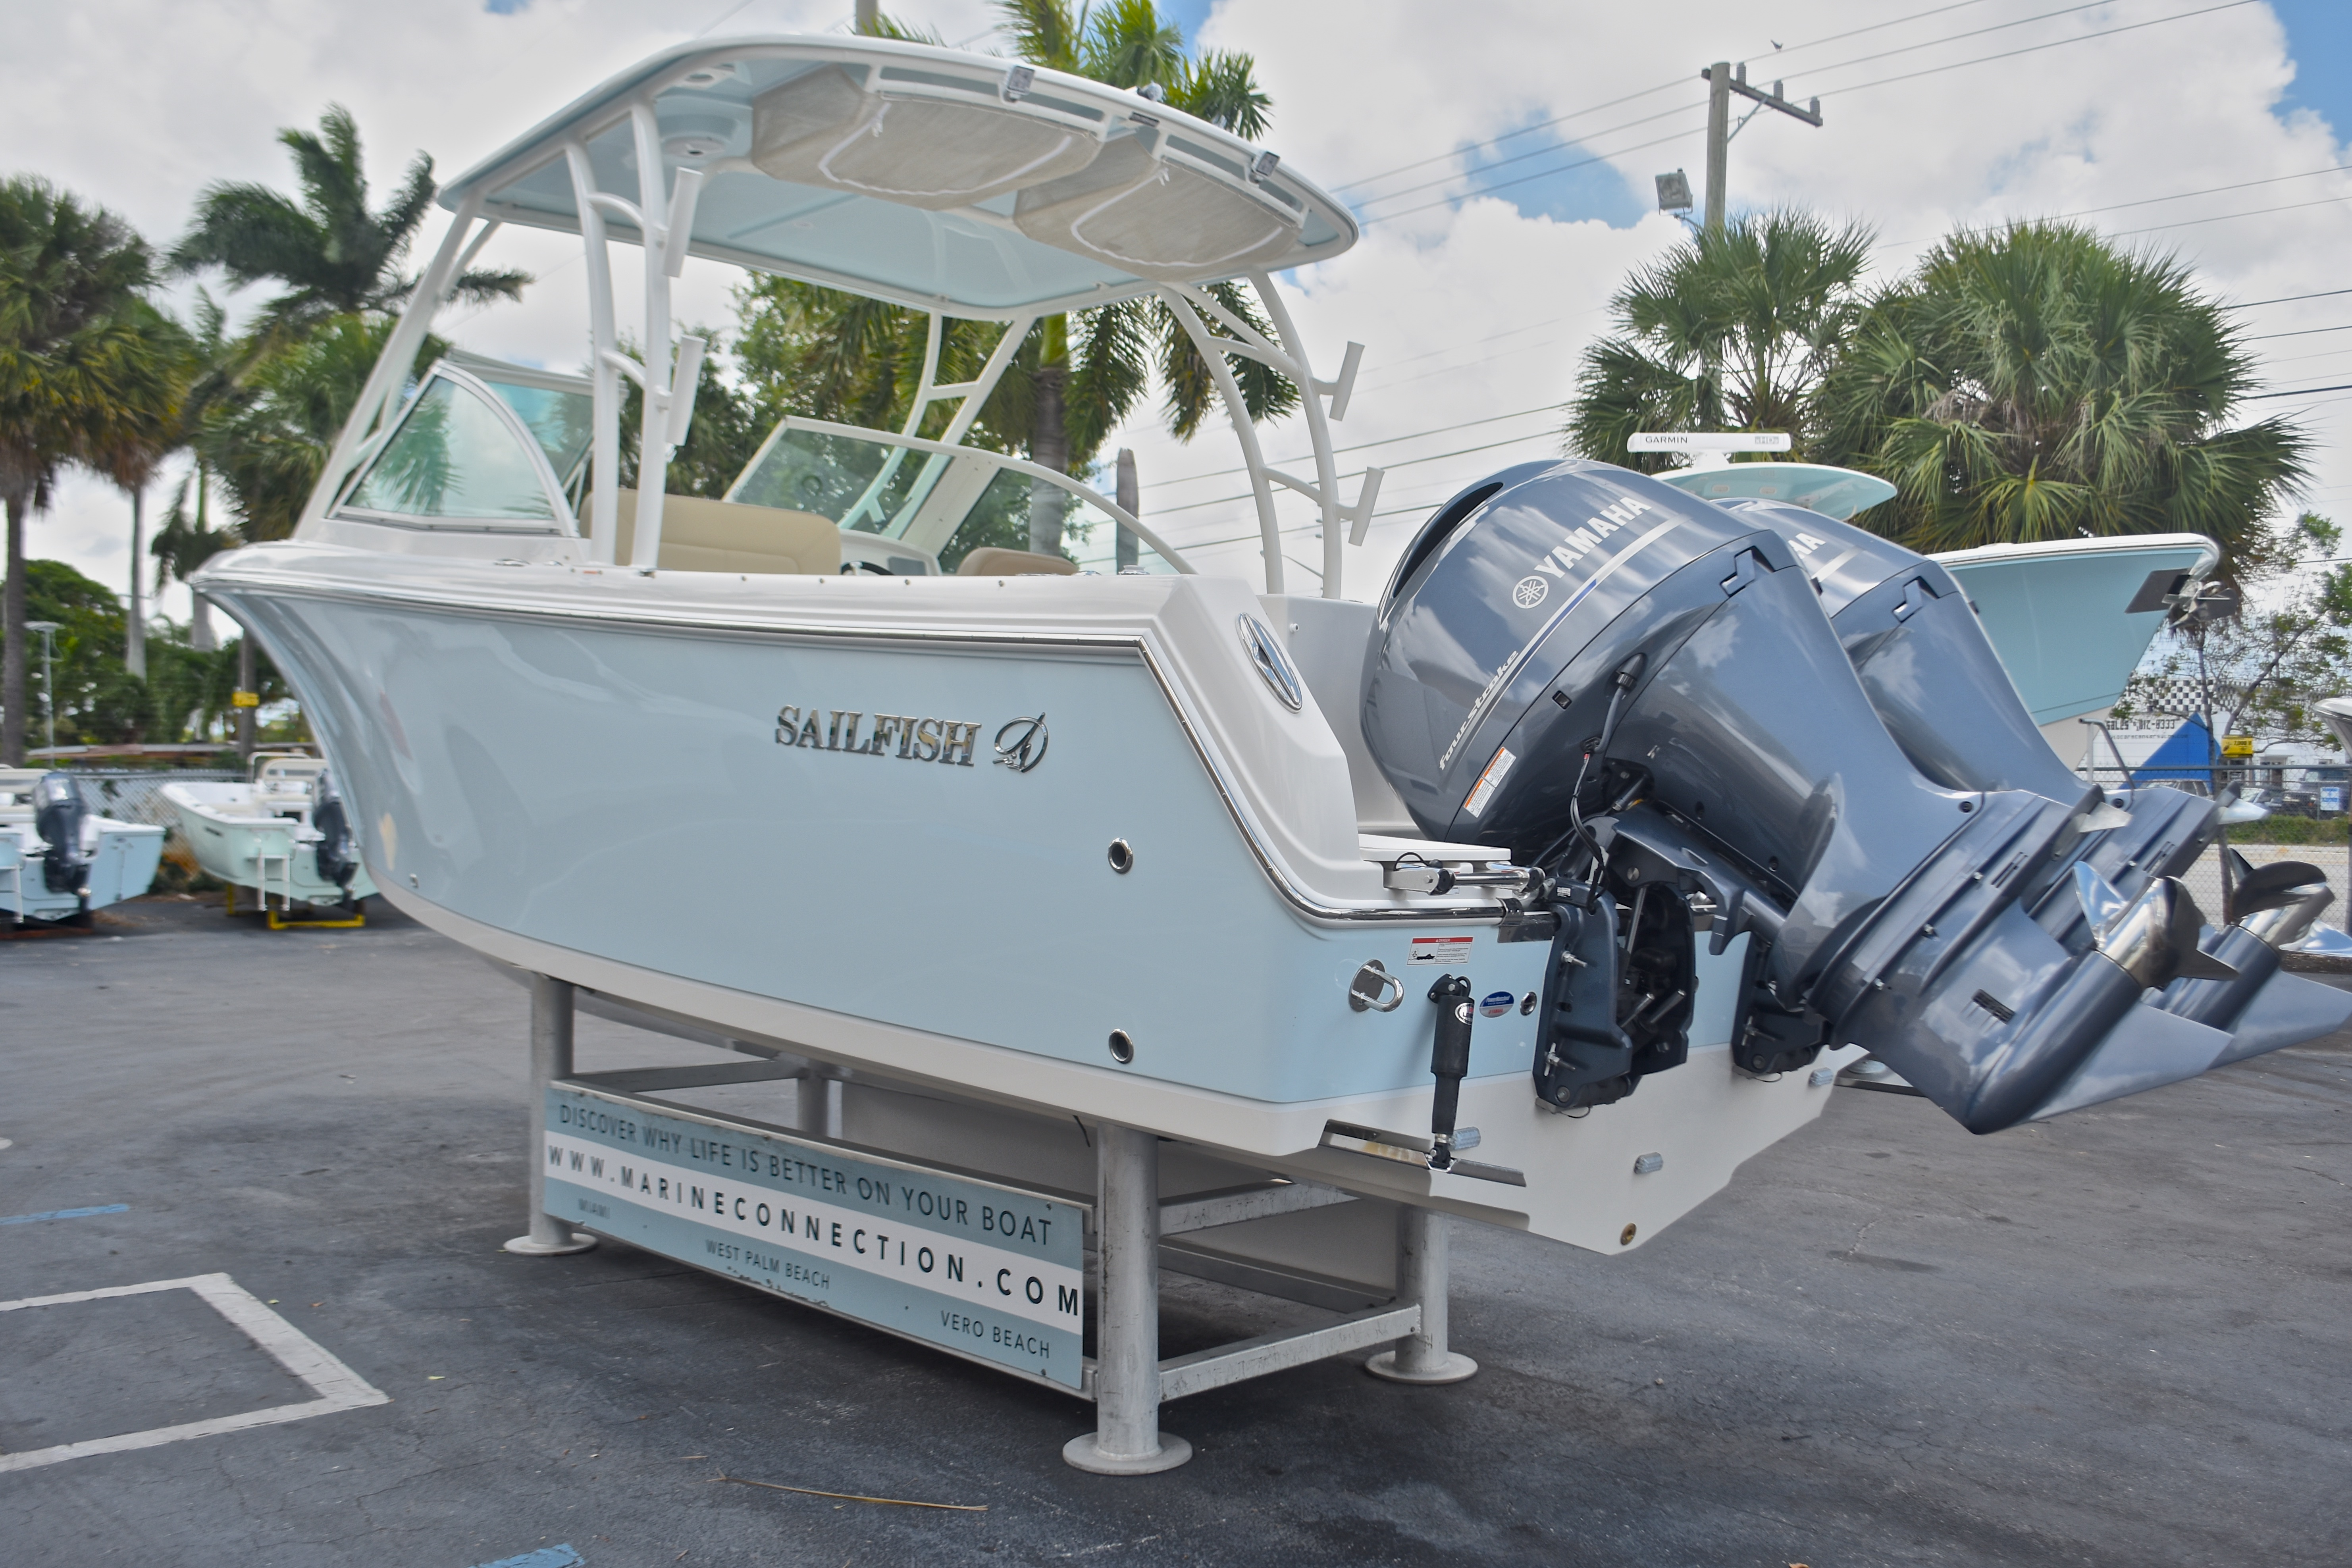 Thumbnail 8 for New 2017 Sailfish 275 Dual Console boat for sale in West Palm Beach, FL